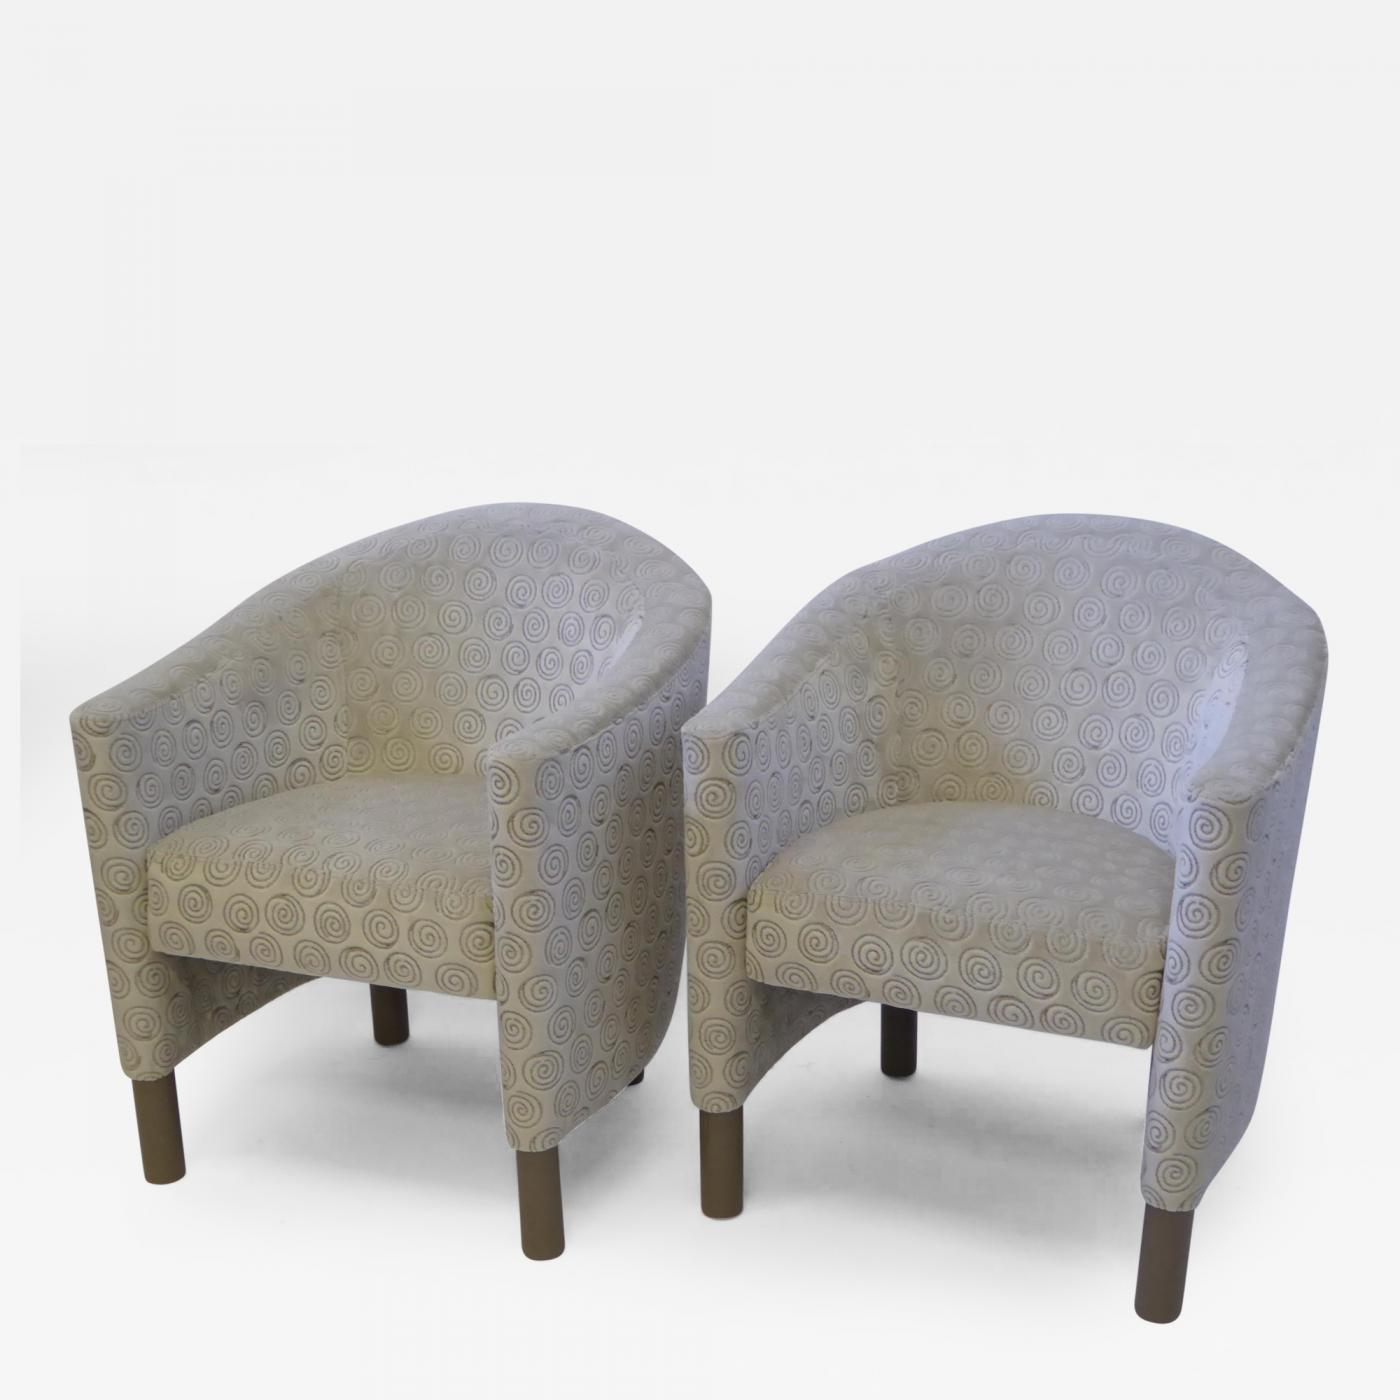 Listings / Furniture / Seating / Armchairs & Brayton International Collection - PAIR of Tub Chairs by Brayton ...